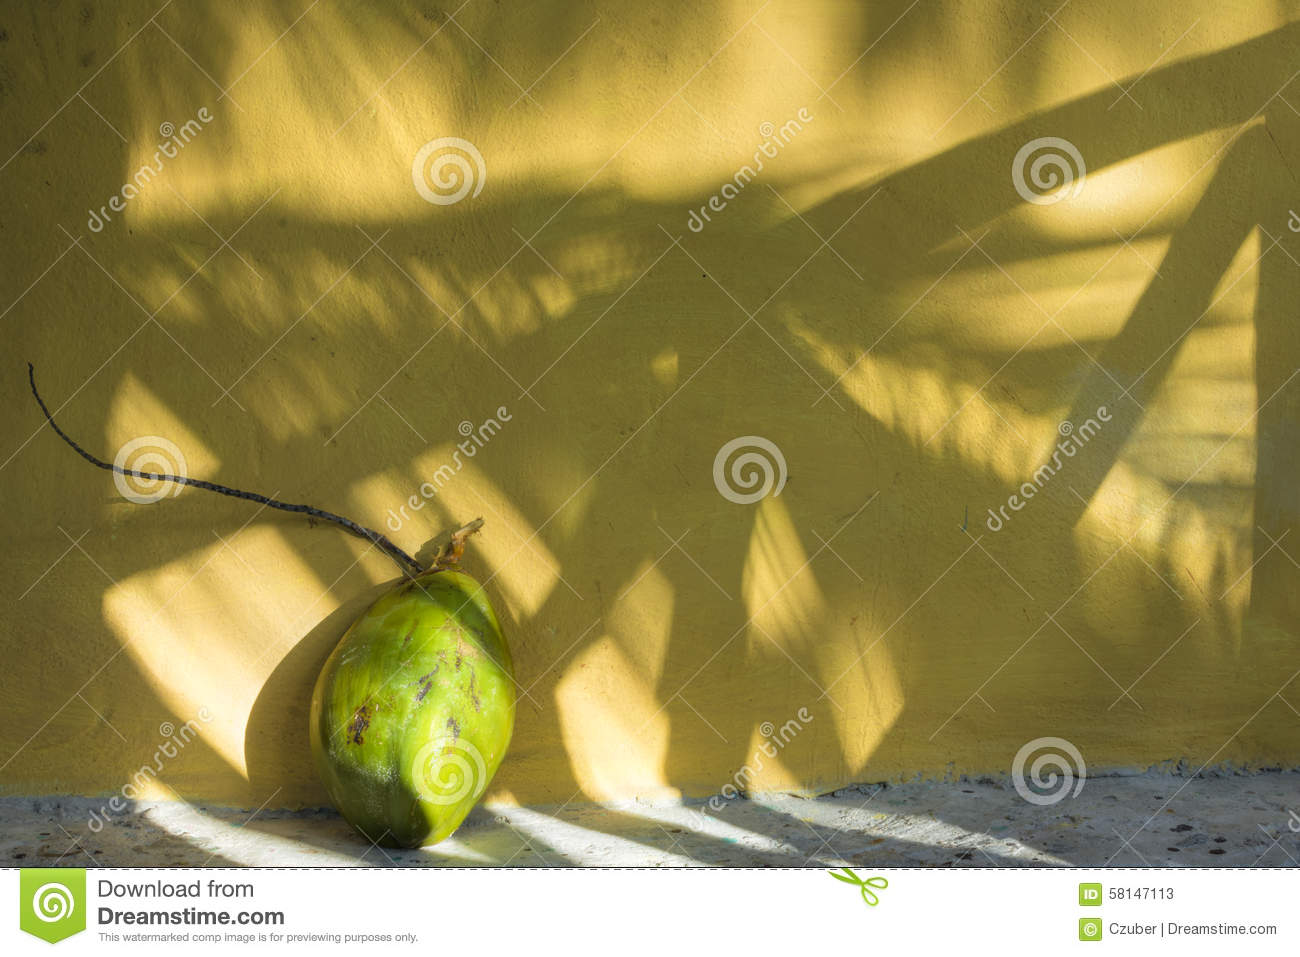 http://thumbs.dreamstime.com/z/coconut-shadows-tropics-big-green-husk-stem-next-to-yellow-exterior-wall-tropical-palm-fronds-copy-space-58147113.jpg